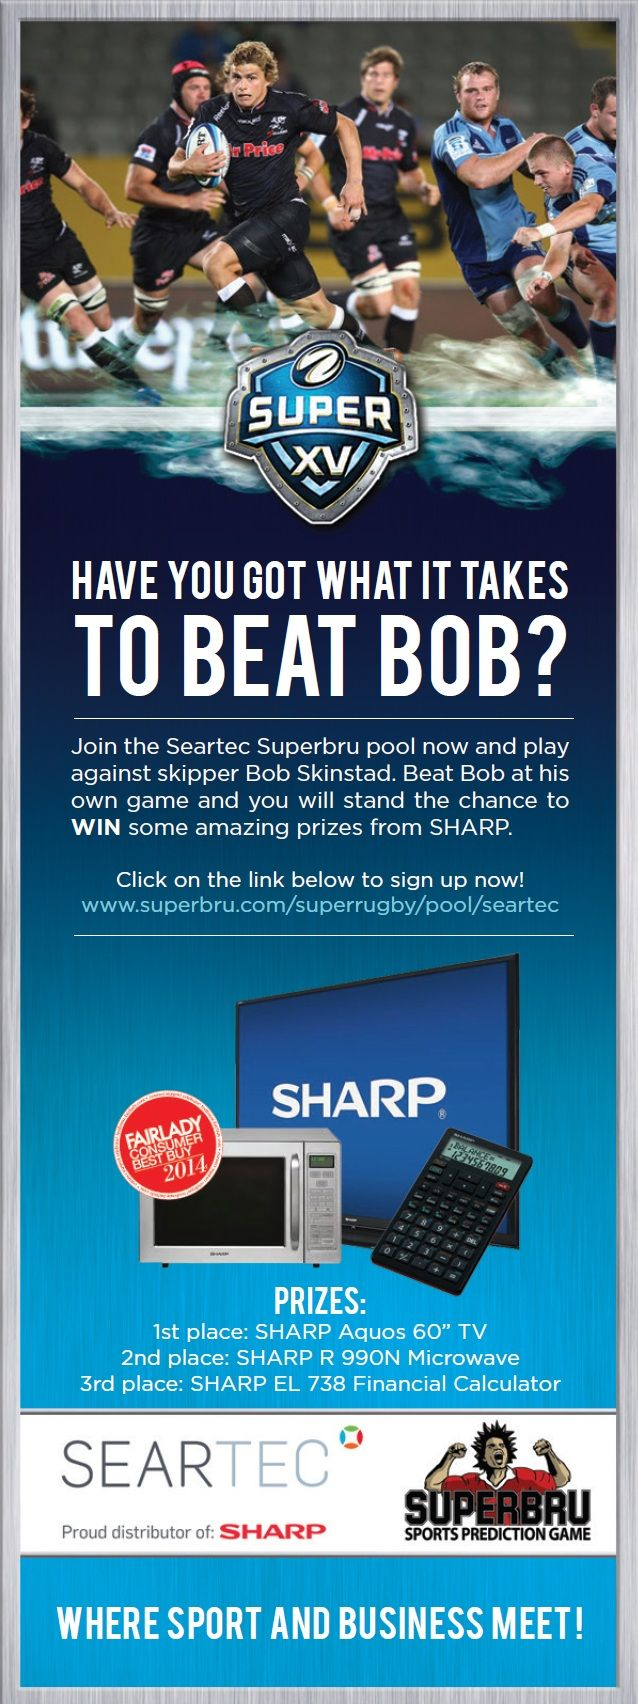 "Join the SEARTEC Superbru pool where you could win some fantastic prizes as well as bragging rights over our very own Bob Skinstad! The competition will run for the duration of the Super Rugby season so make sure you keep your eyes on the log.  1st Prize: 60"" SHARP Aquos TV 2nd Prize: R-990N Microwave 3rd Prize: EL-738 Financial Calculator  Join the Seartec pool by clicking on the link below or entering the pool code. http://www.superbru.com/superrugby/pool.php?p=11354283  Pool code…"